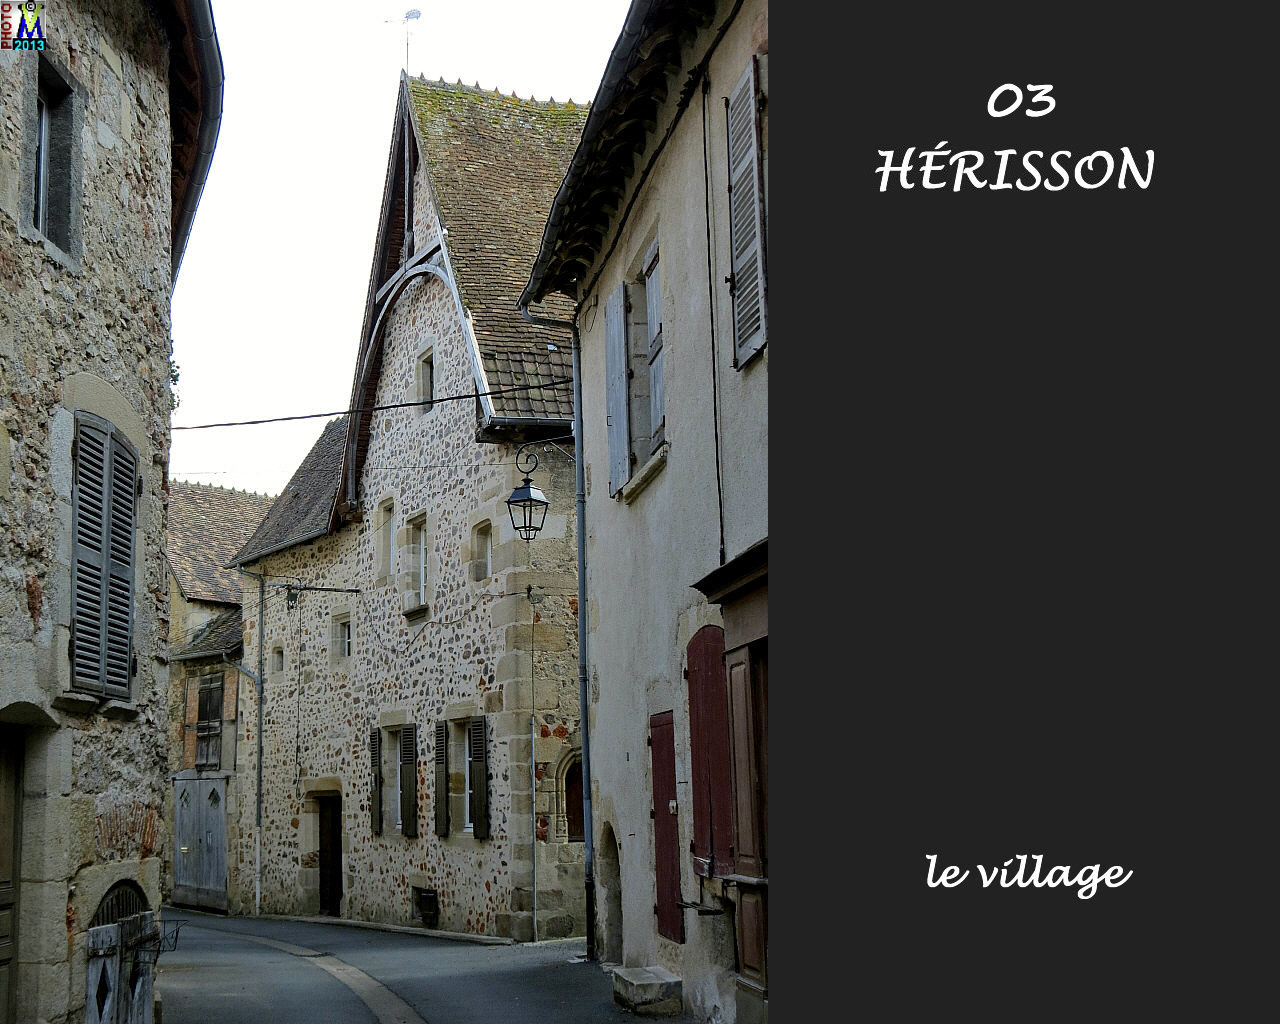 03HERISSON_village_102.jpg